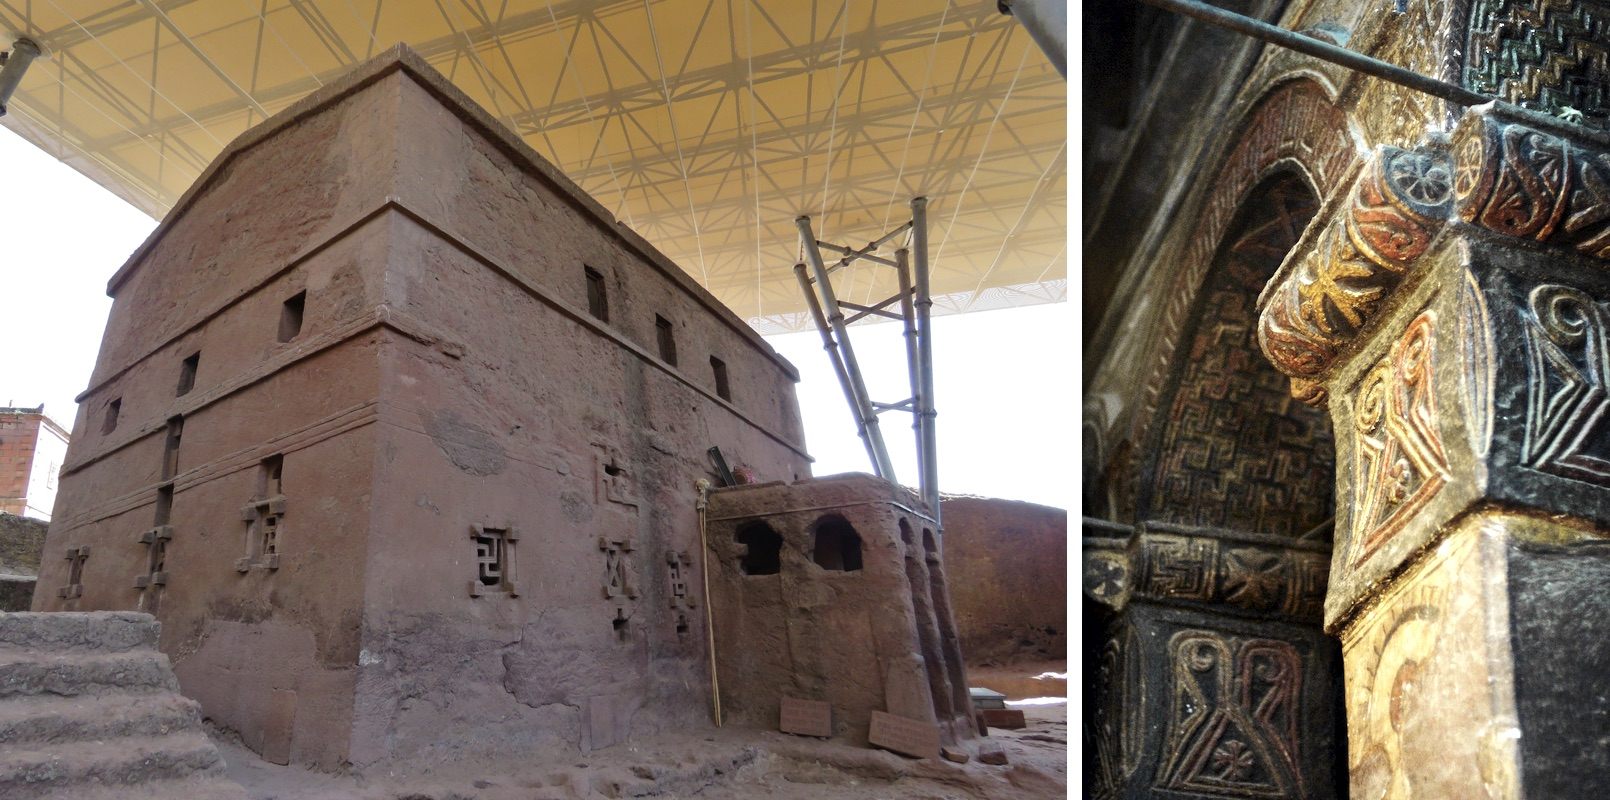 Left: exterior, Bete Maryam, Lalibela, Ethiopia, 13th century (photo: Bernard Gagnon, CC BY-SA 3.0); right: interior, Bete Maryam, Lalibela, Ethiopia, 13th century (photo: A. Davey, CC BY 2.0)